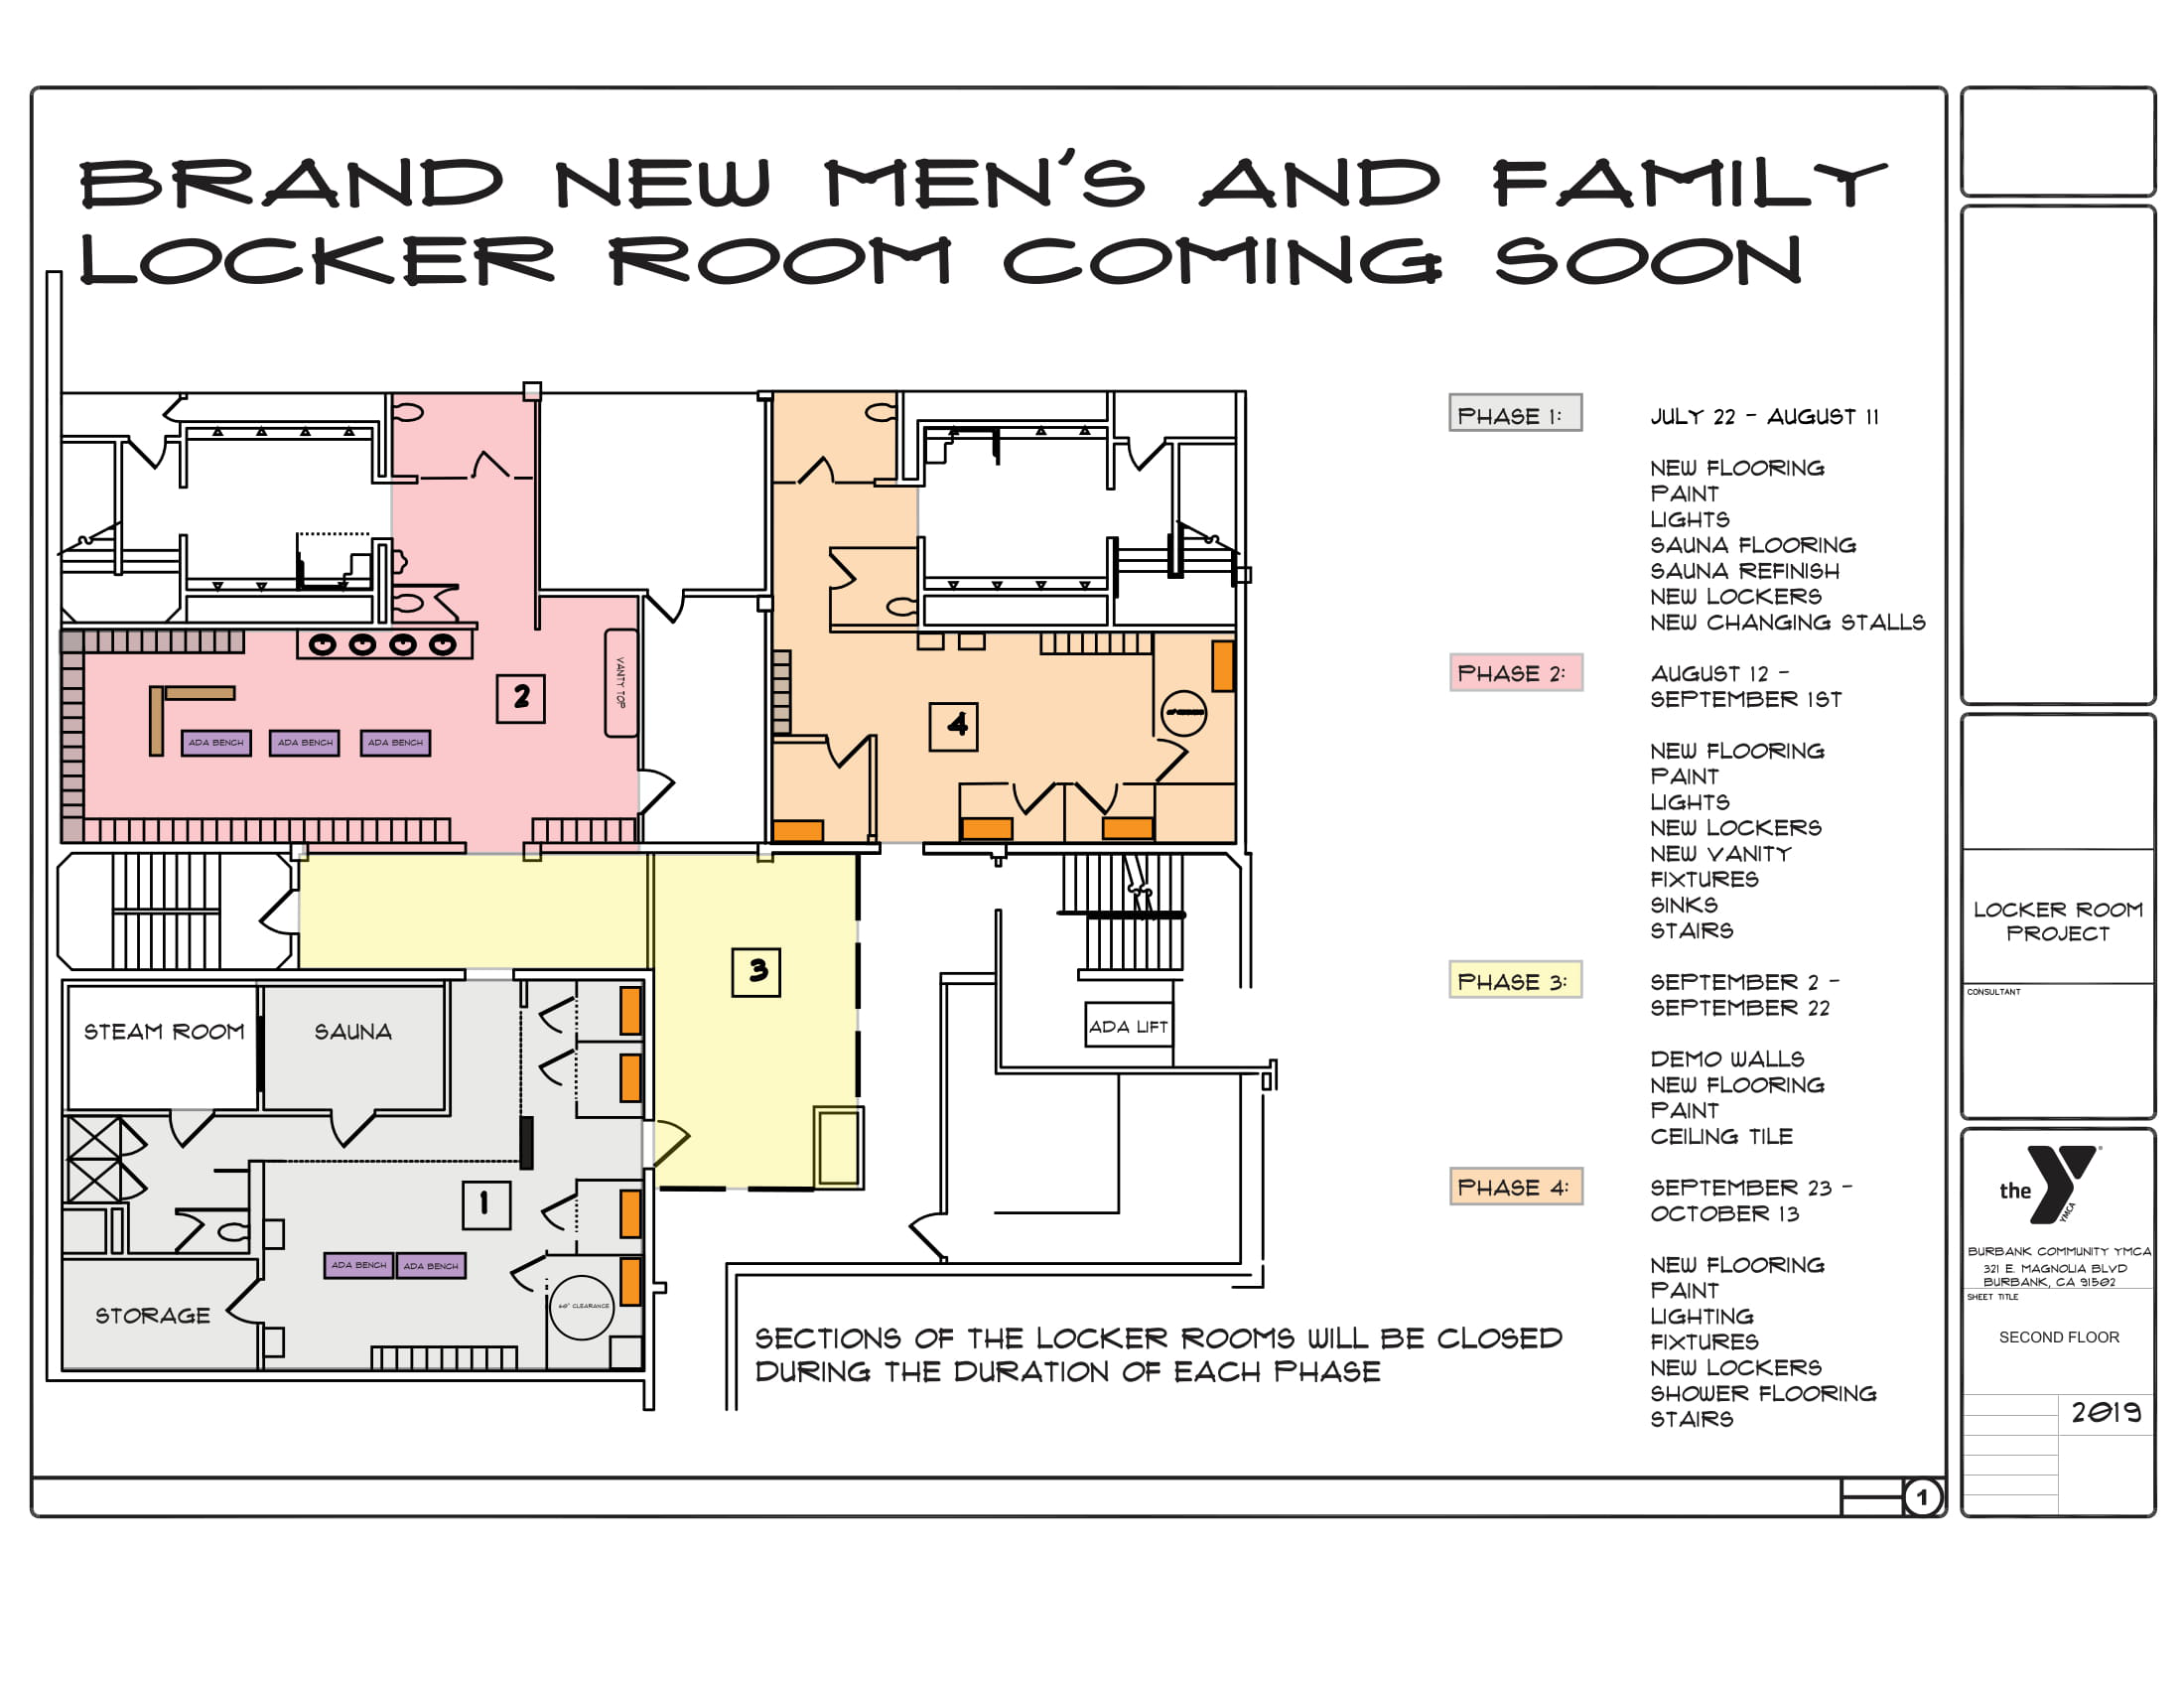 medium resolution of brand new men s and family locker rooms coming soon